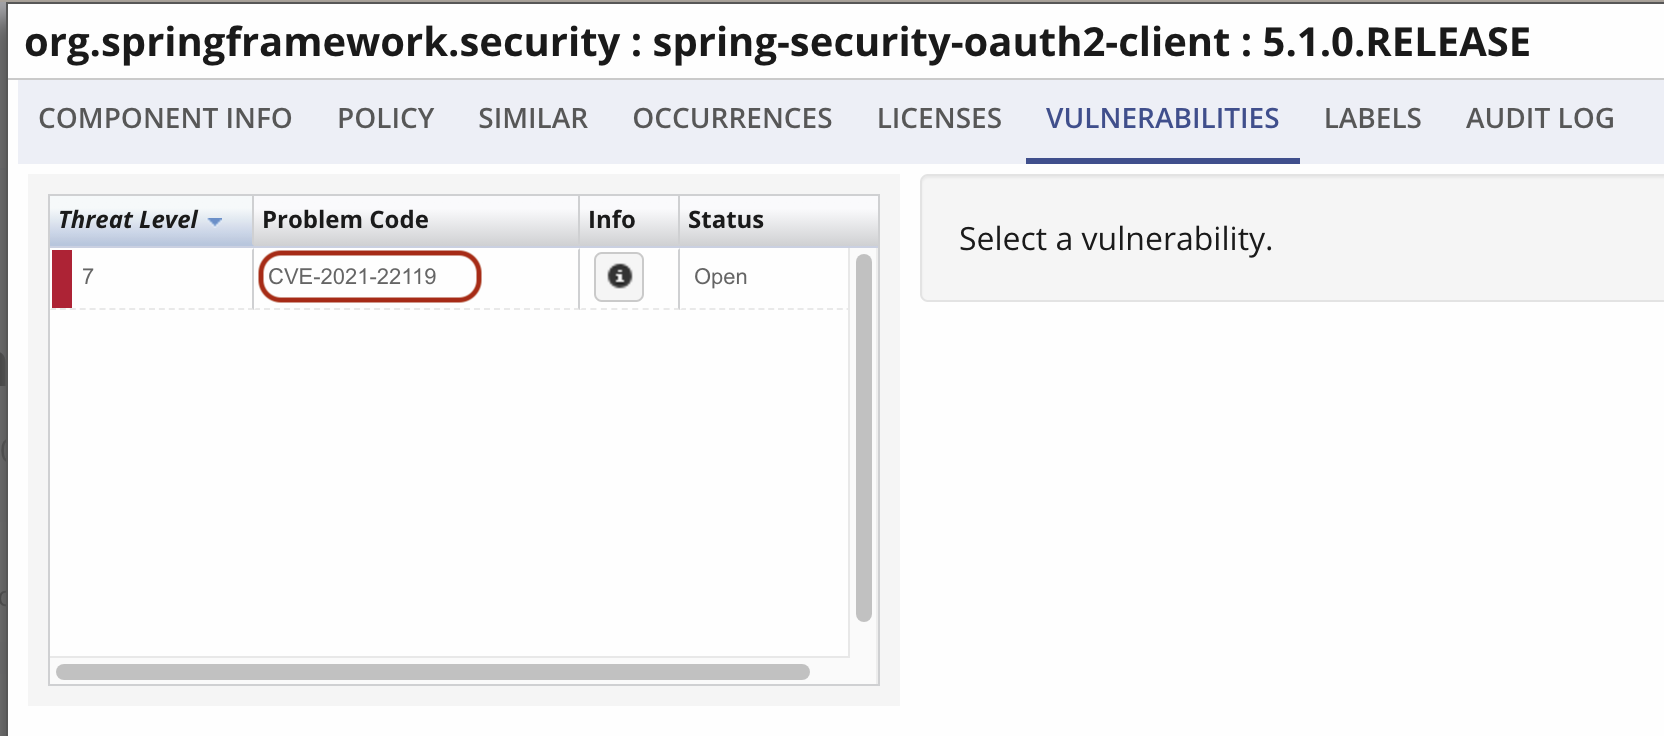 spring-security-oauth2-client version 5.1.0.RELEASE vulnerable to CVE-2021-22119